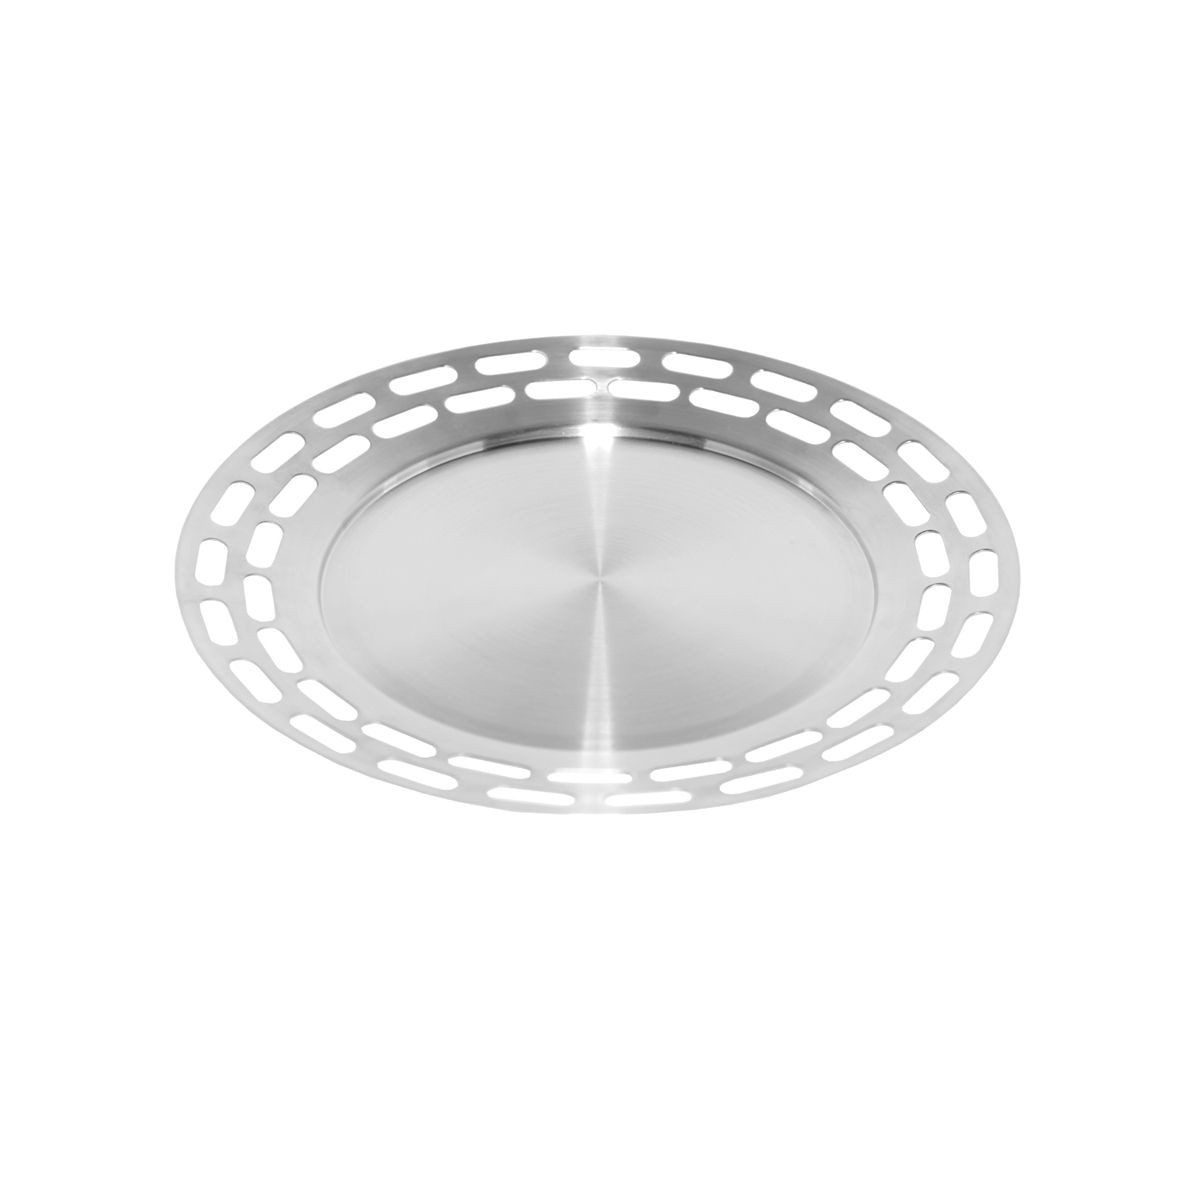 "Service Ideas SB-47 SteelForme Round Serving Tray 15"" Dia."